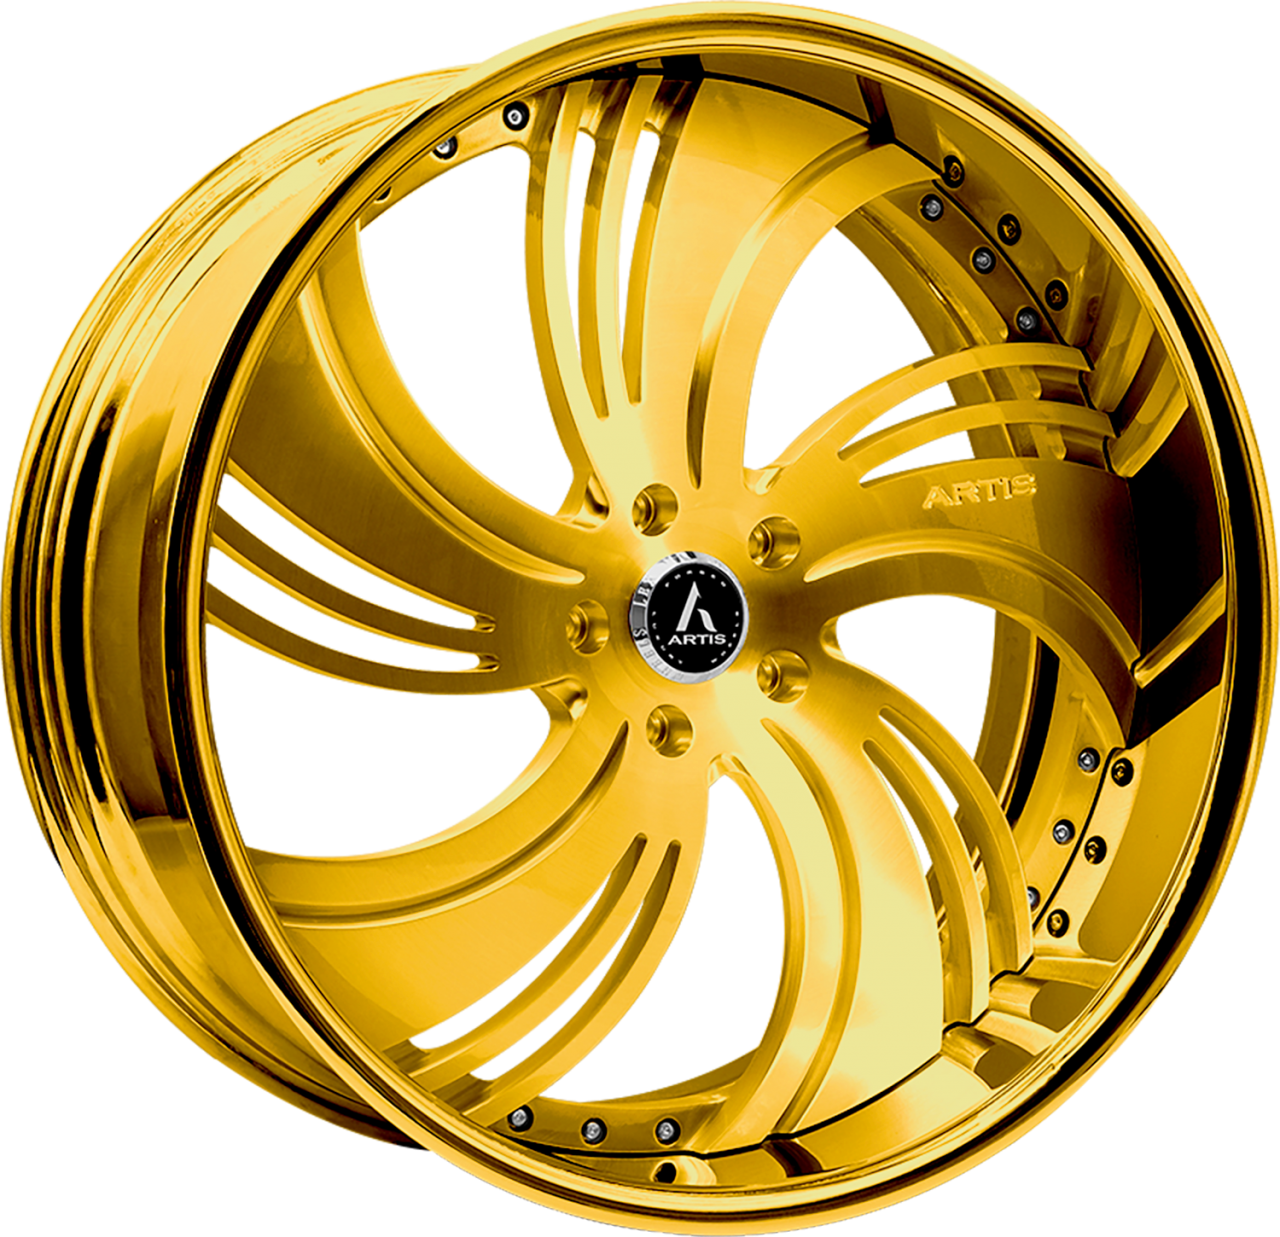 Artis Forged Avenue wheel with Gold Finish finish